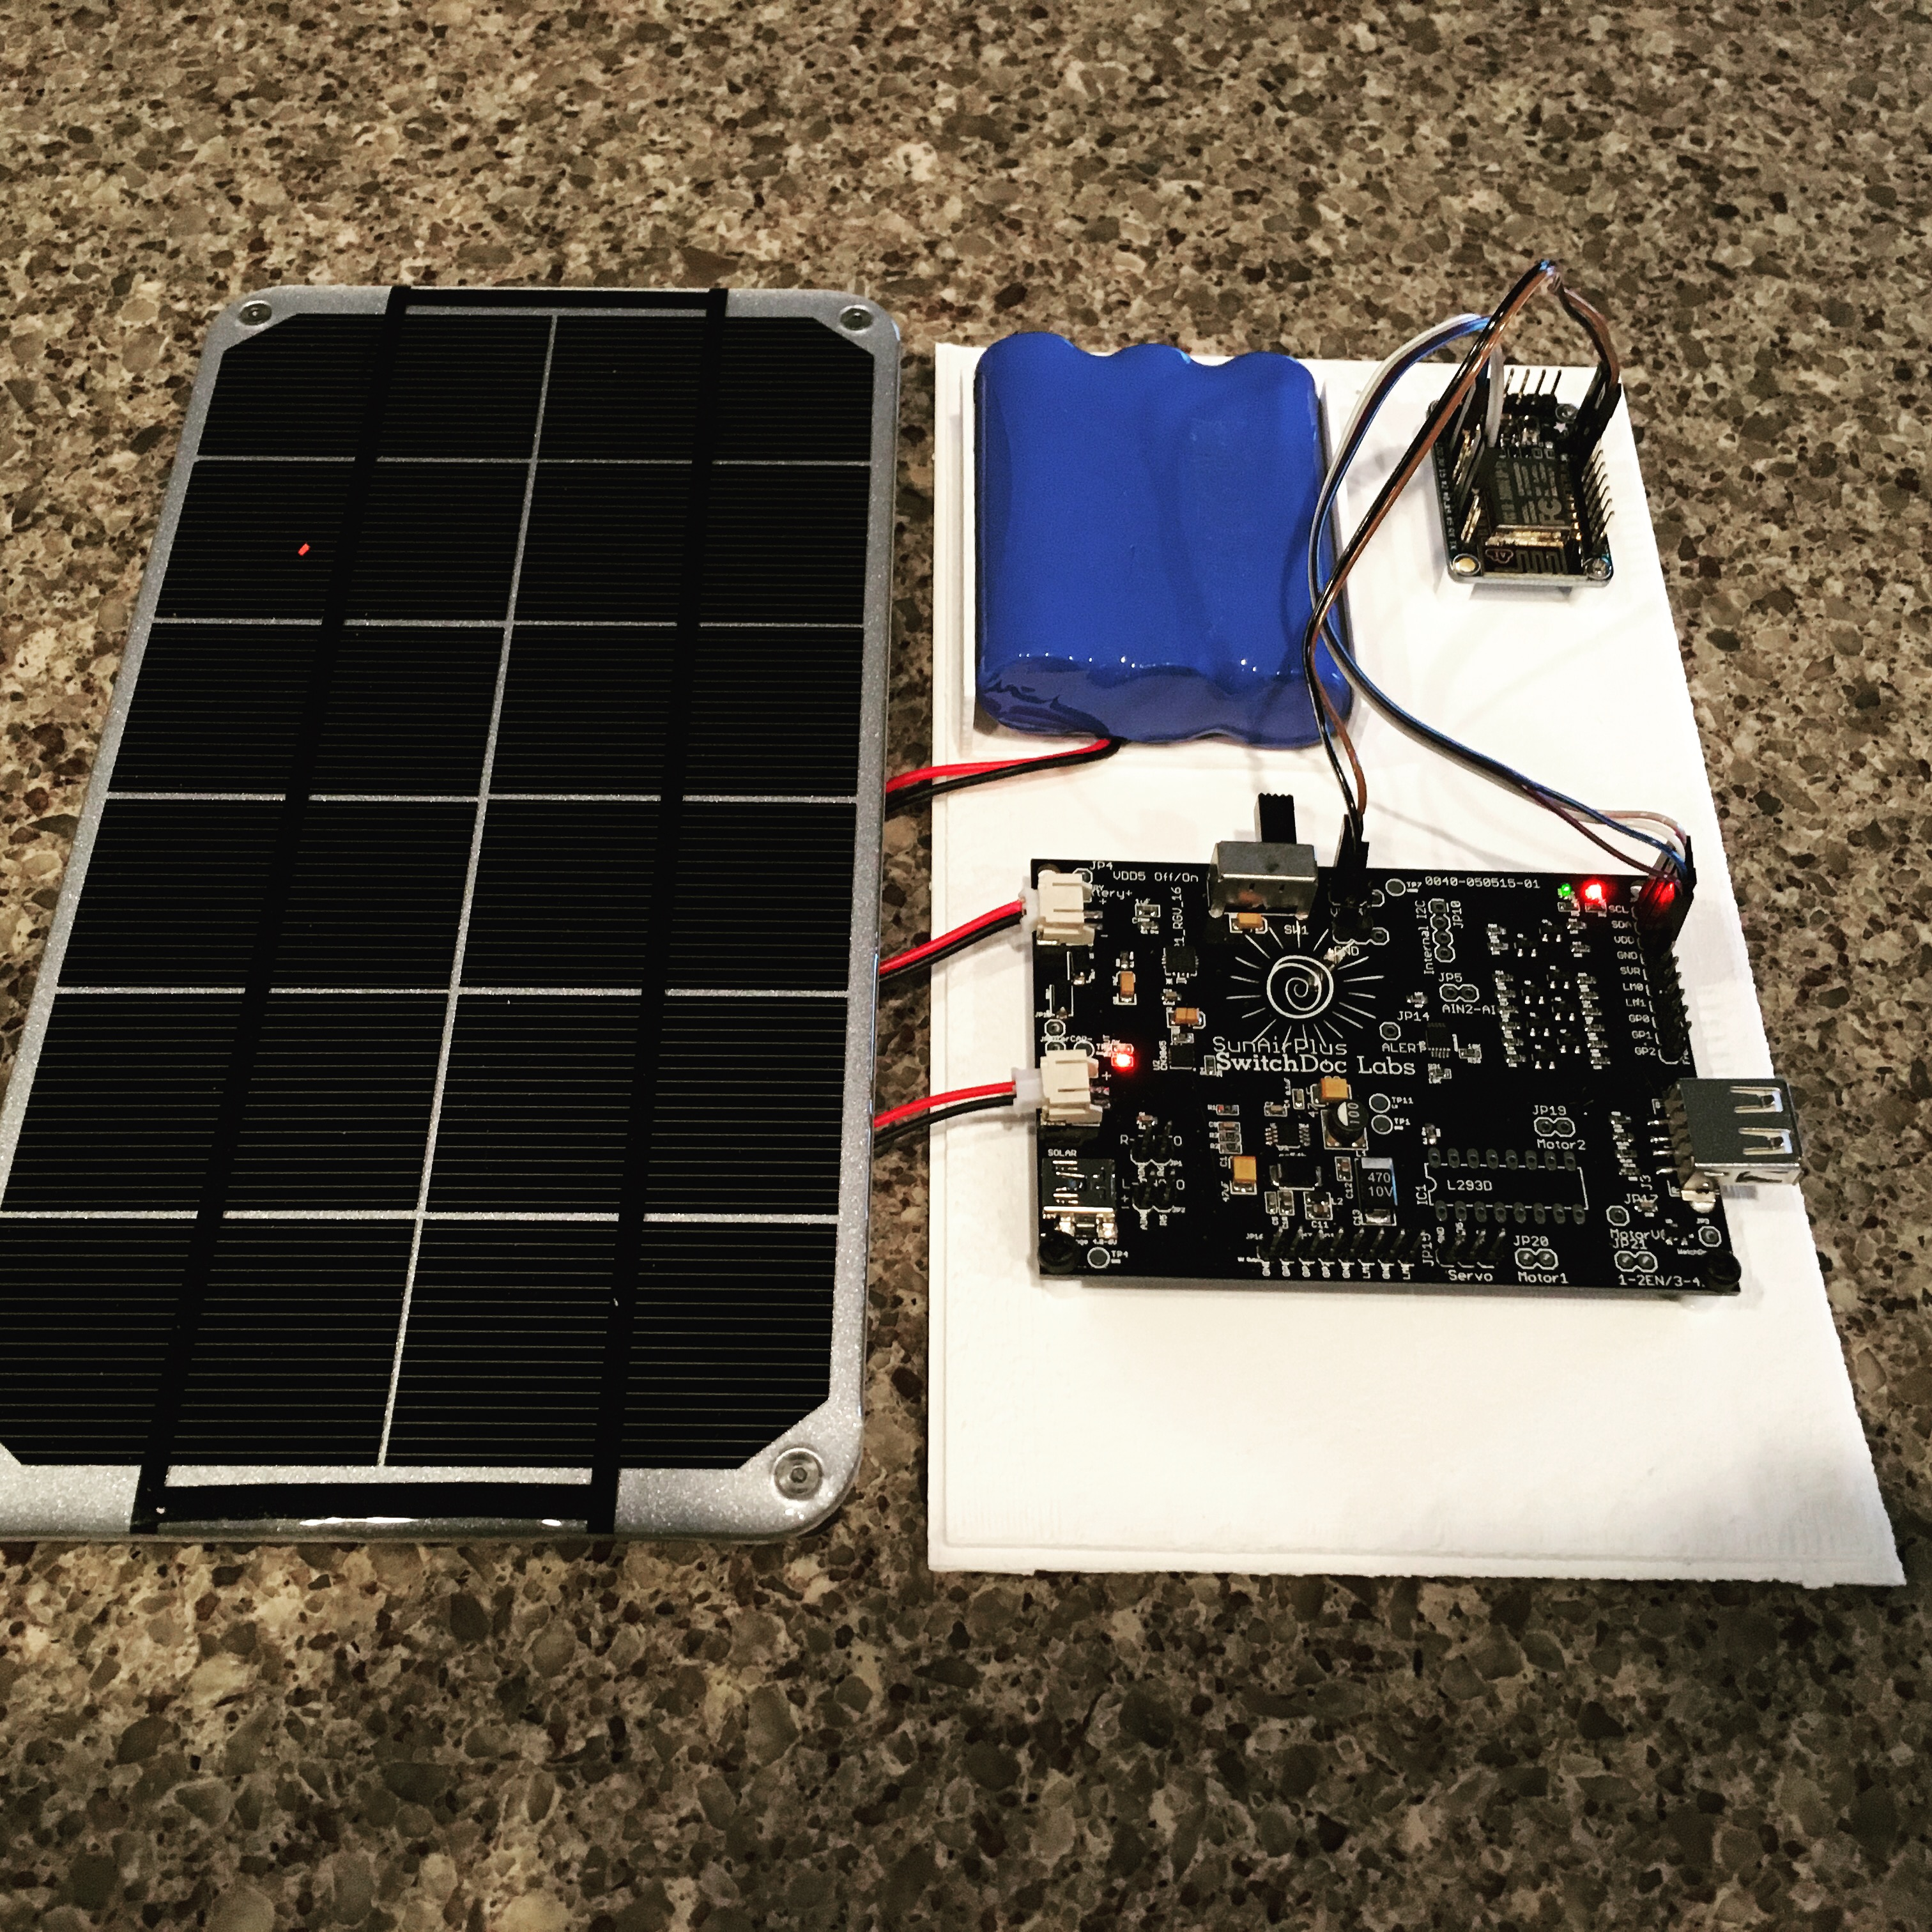 Iot Esp8266 Tutorial Solar Power Your 1 Switchdoc Labs Powered Arduino Weather Station Li Ion Battery Charger